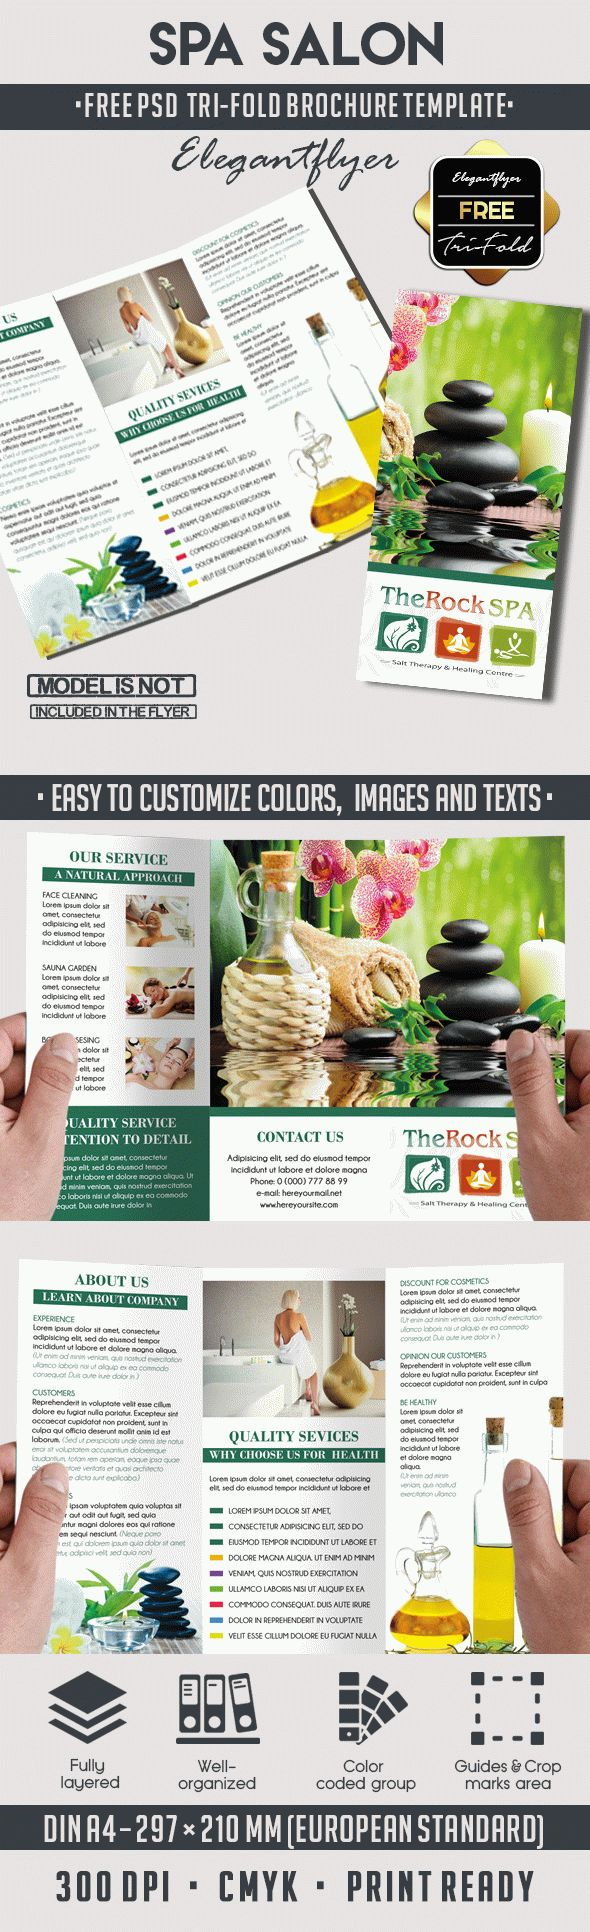 free brochure templates psd download - spa free psd tri fold psd brochure template by elegantflyer